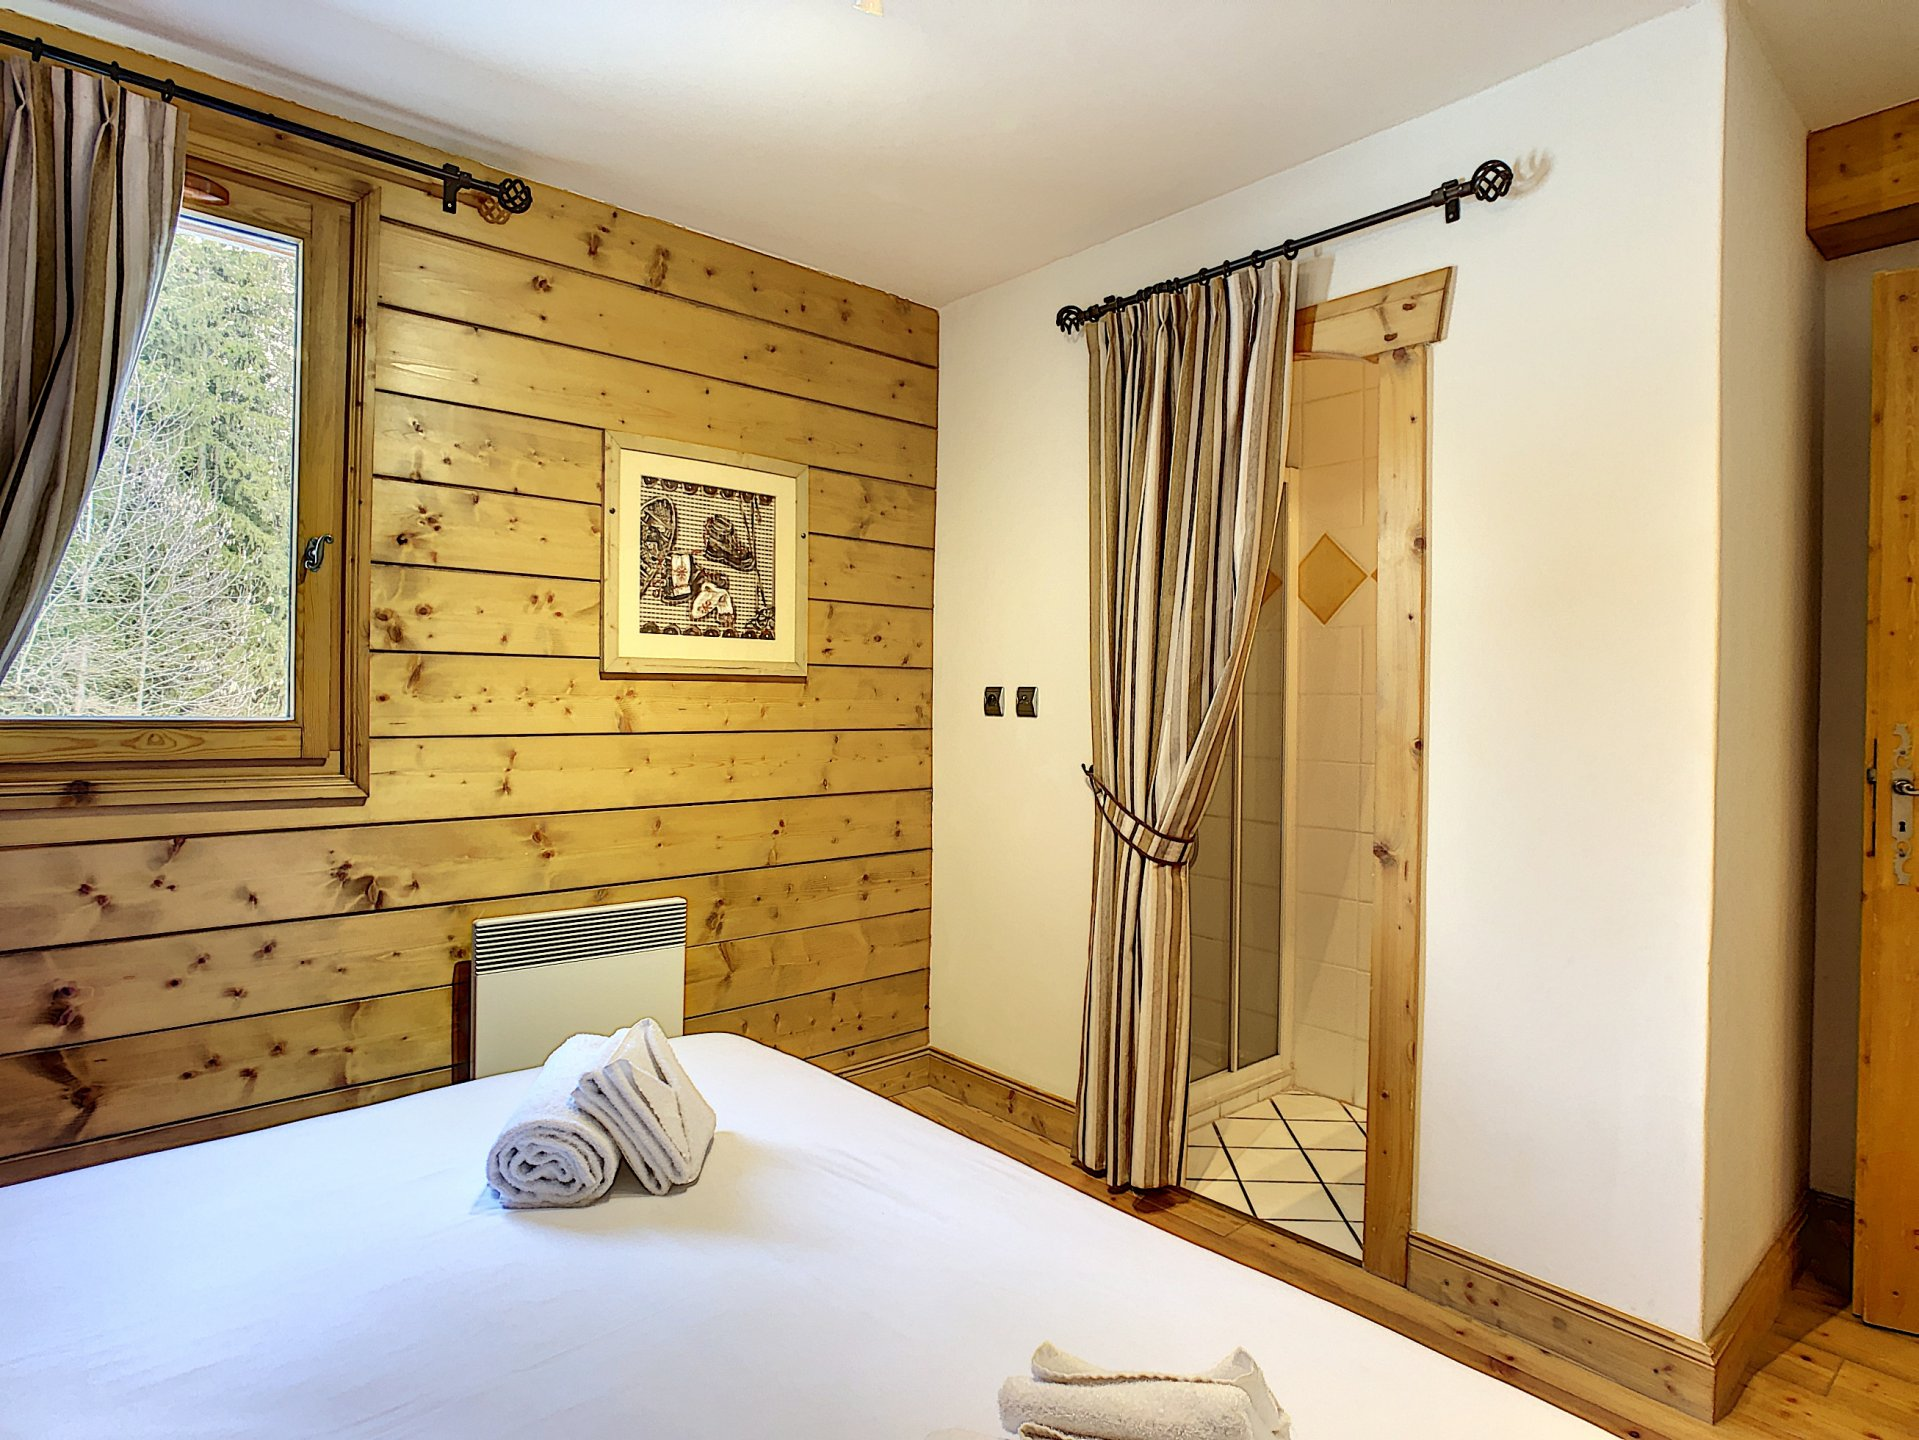 3 bedroom apartment, Les Houches